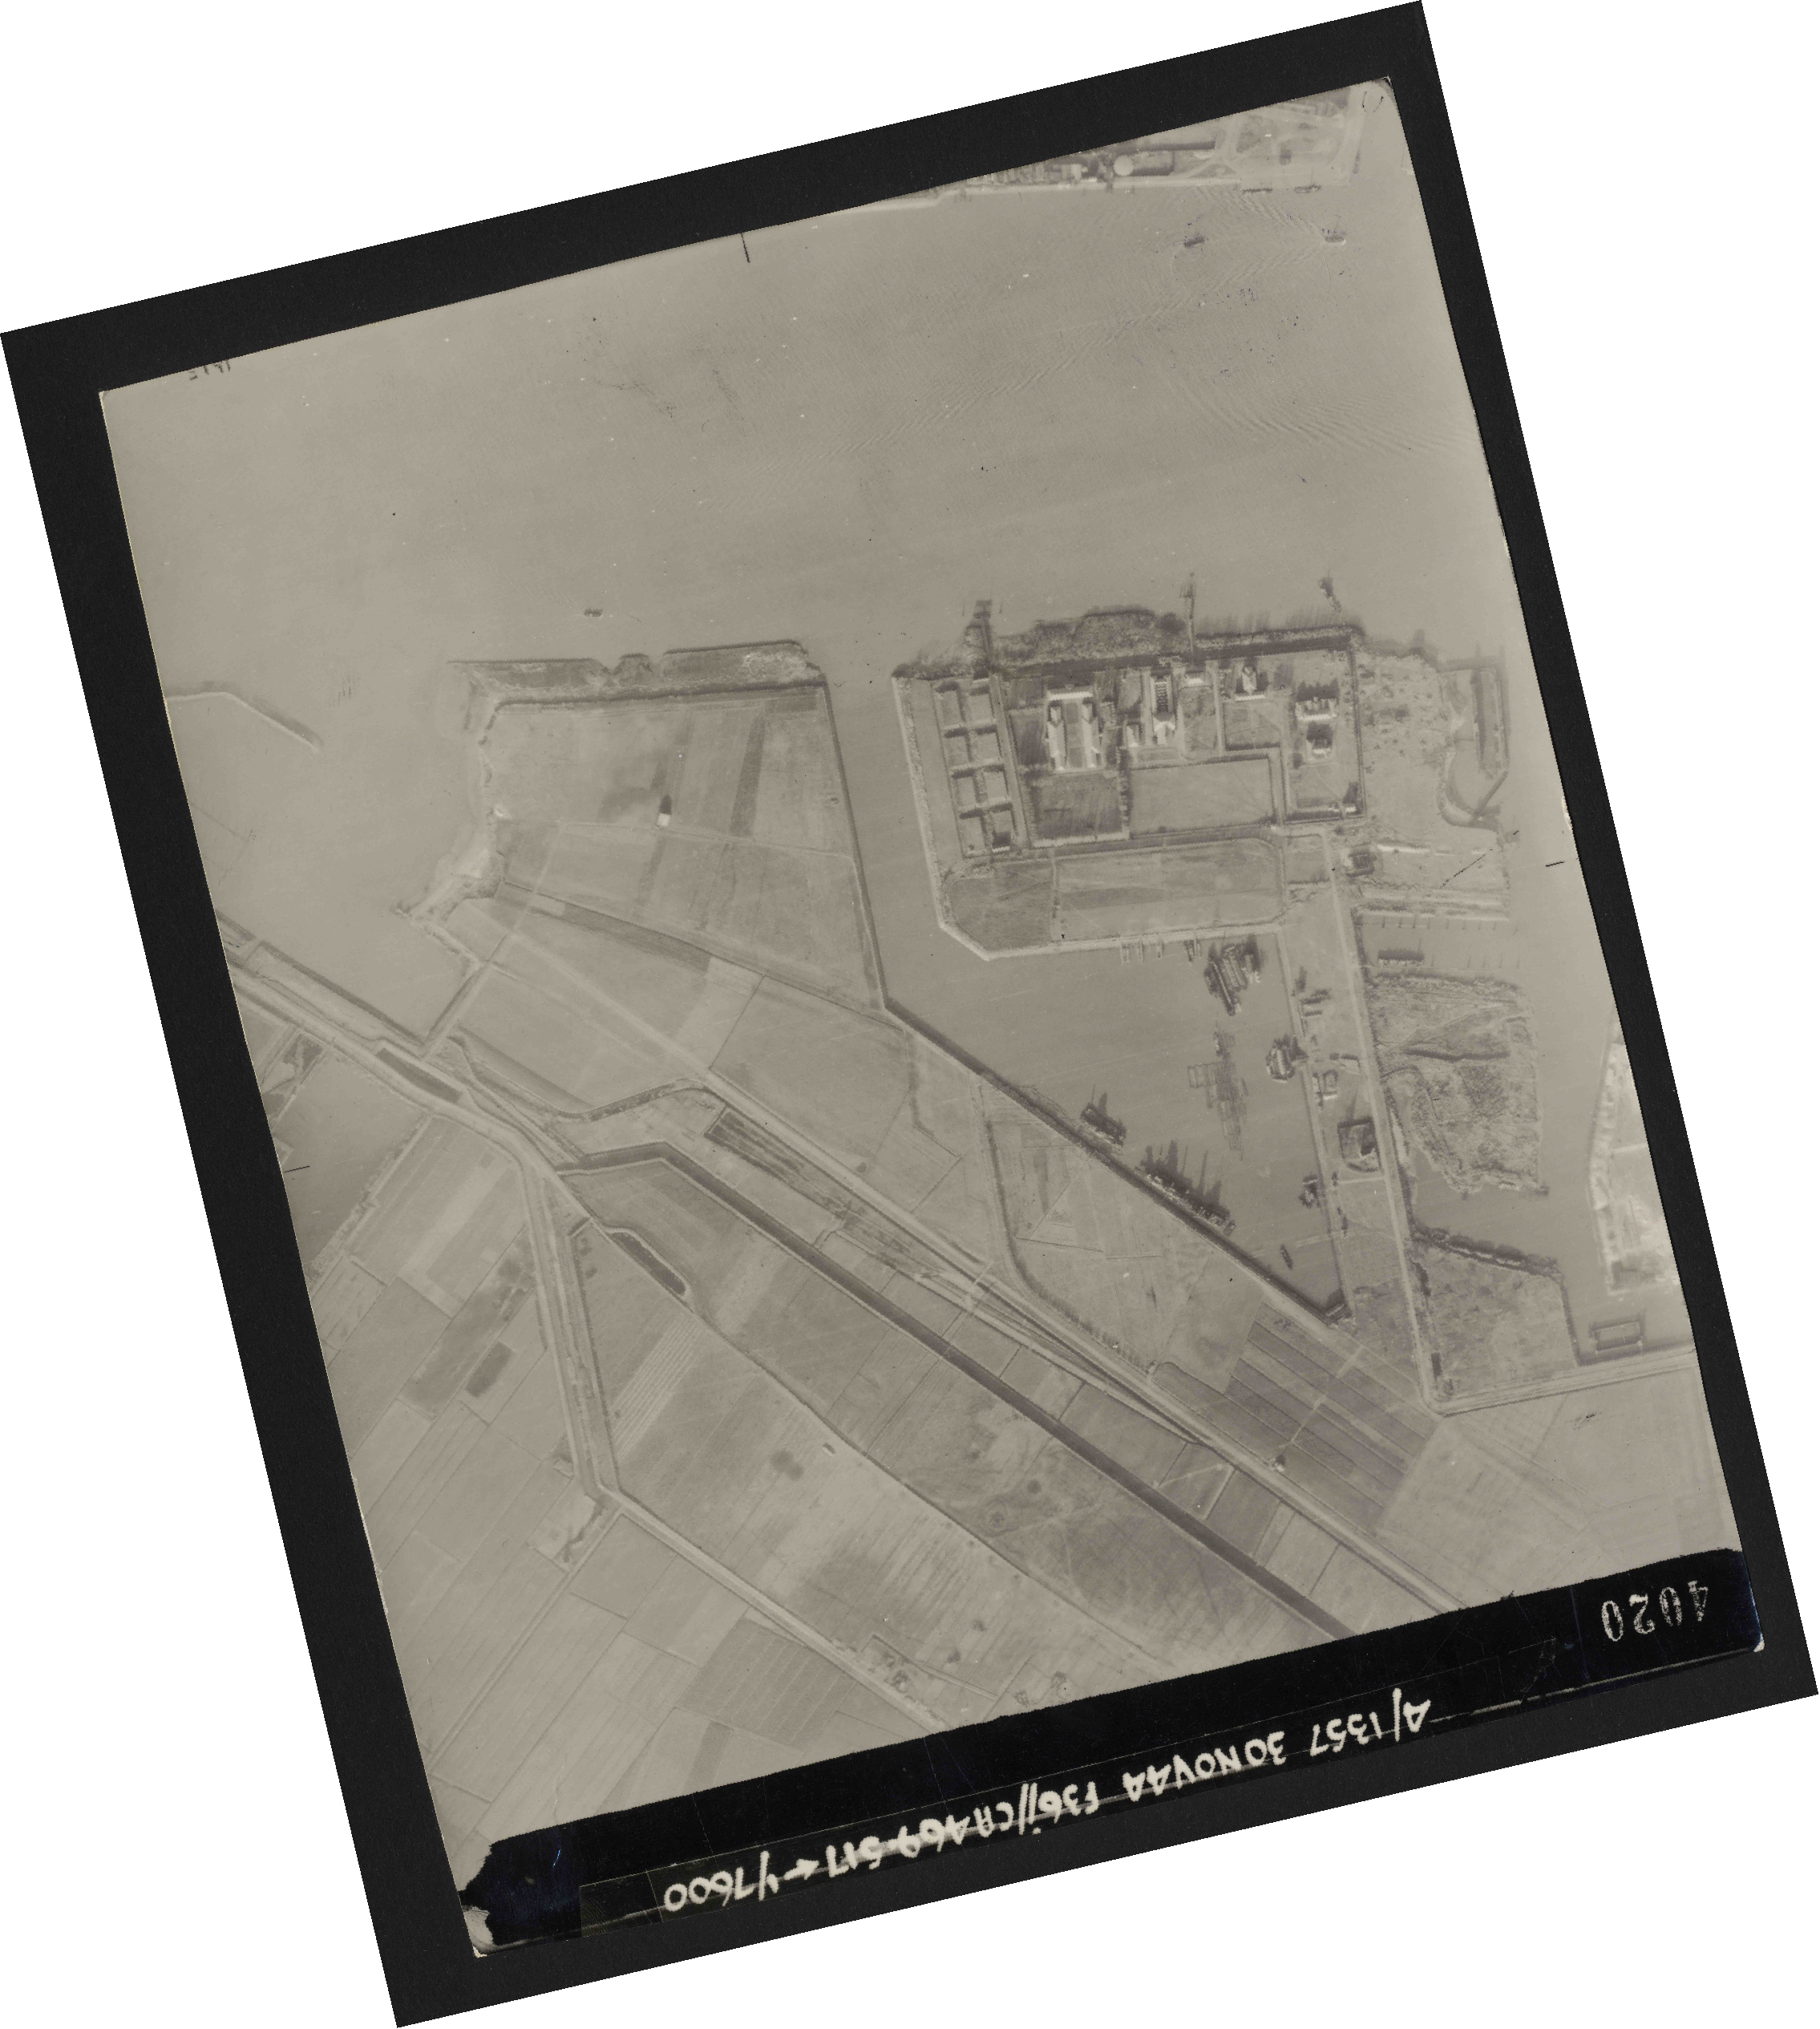 Collection RAF aerial photos 1940-1945 - flight 259, run 04, photo 4020